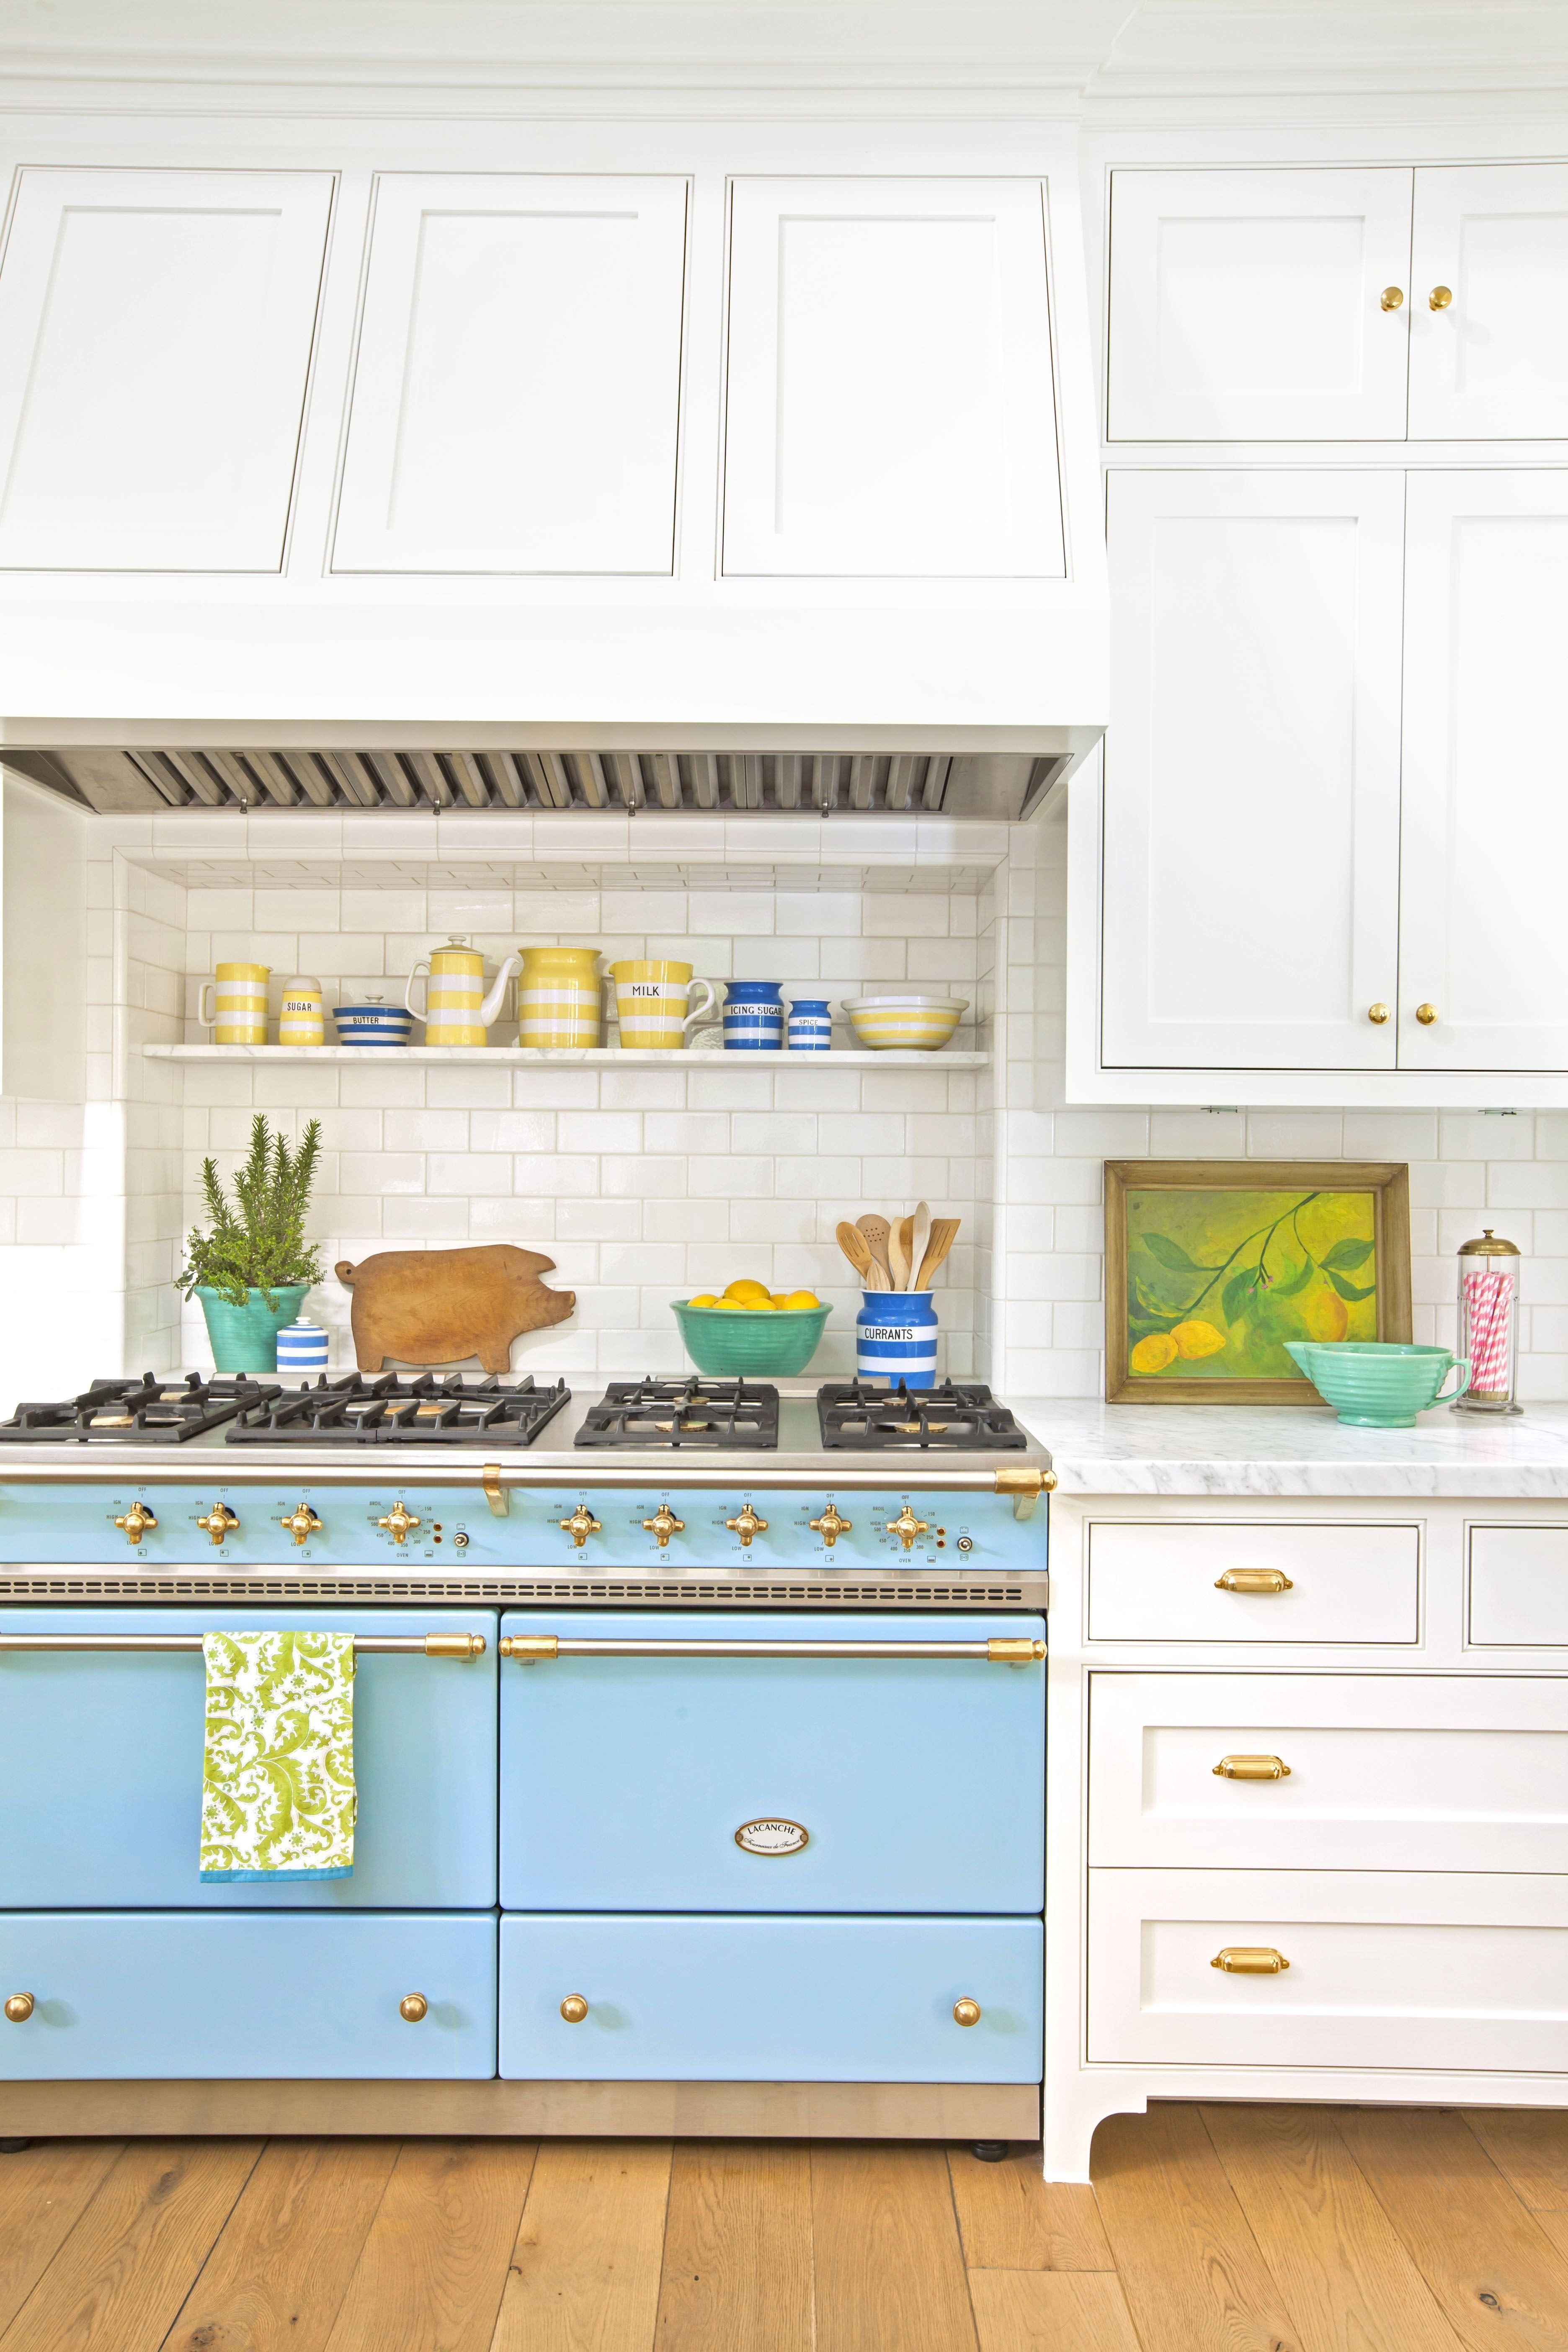 Blue Kitchen Decor Accessories Fresh 22 Gorgeous Kitchen Trends For 2019 New Cabinet And Color Kitchen Trends Kitchen Accessories Decor Blue Kitchen Decor